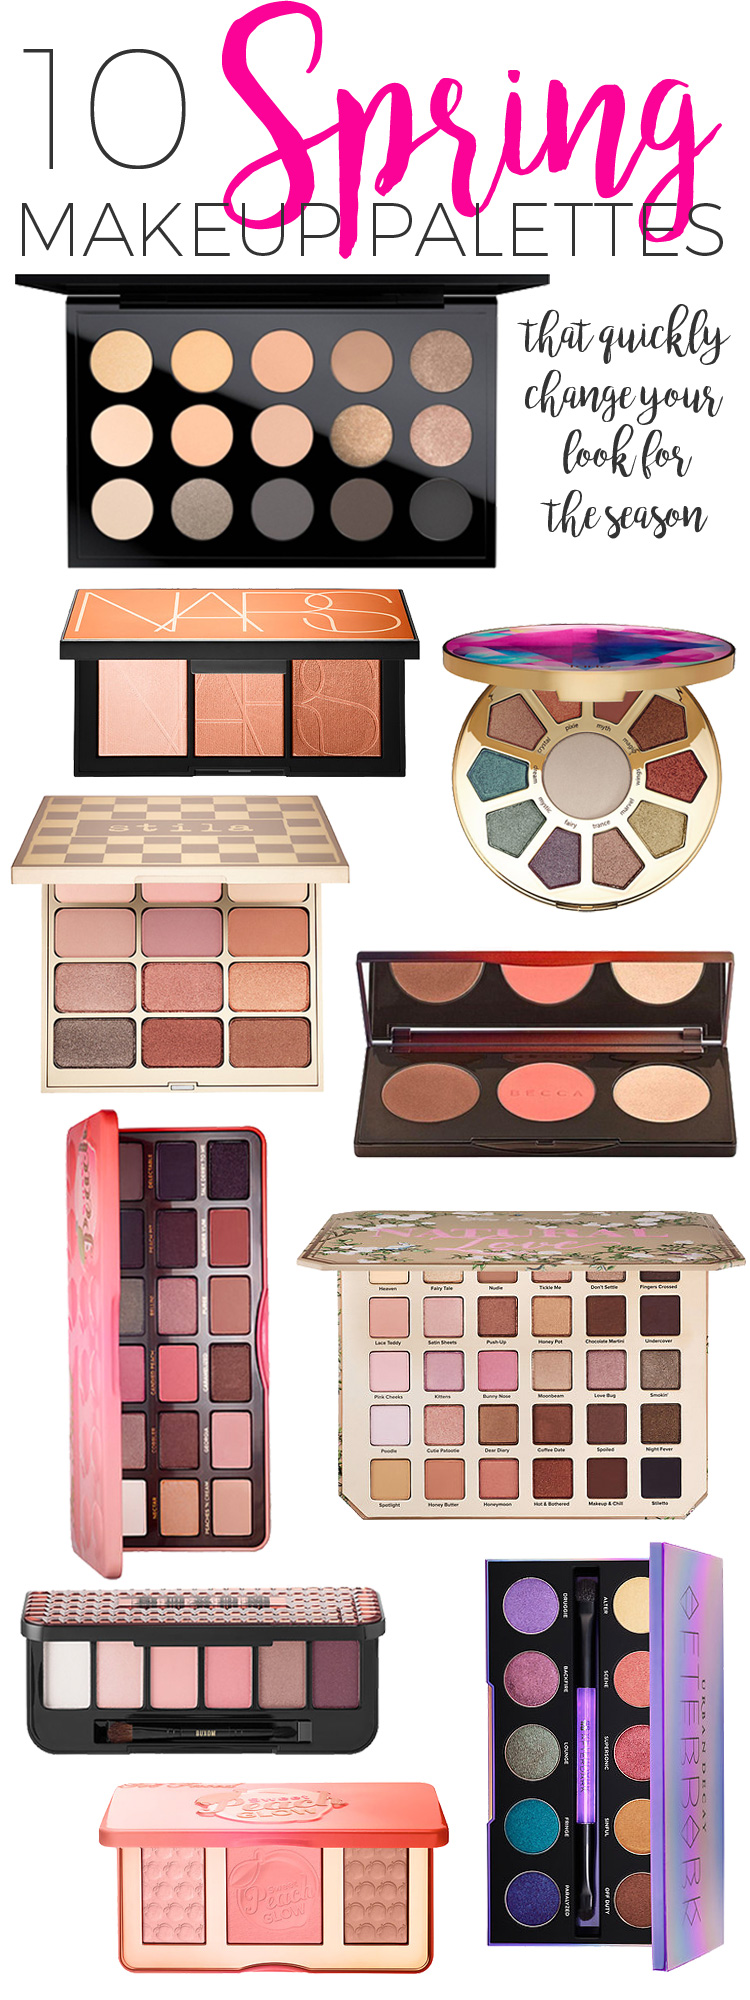 Top 10 Spring Makeup Palettes for 2017